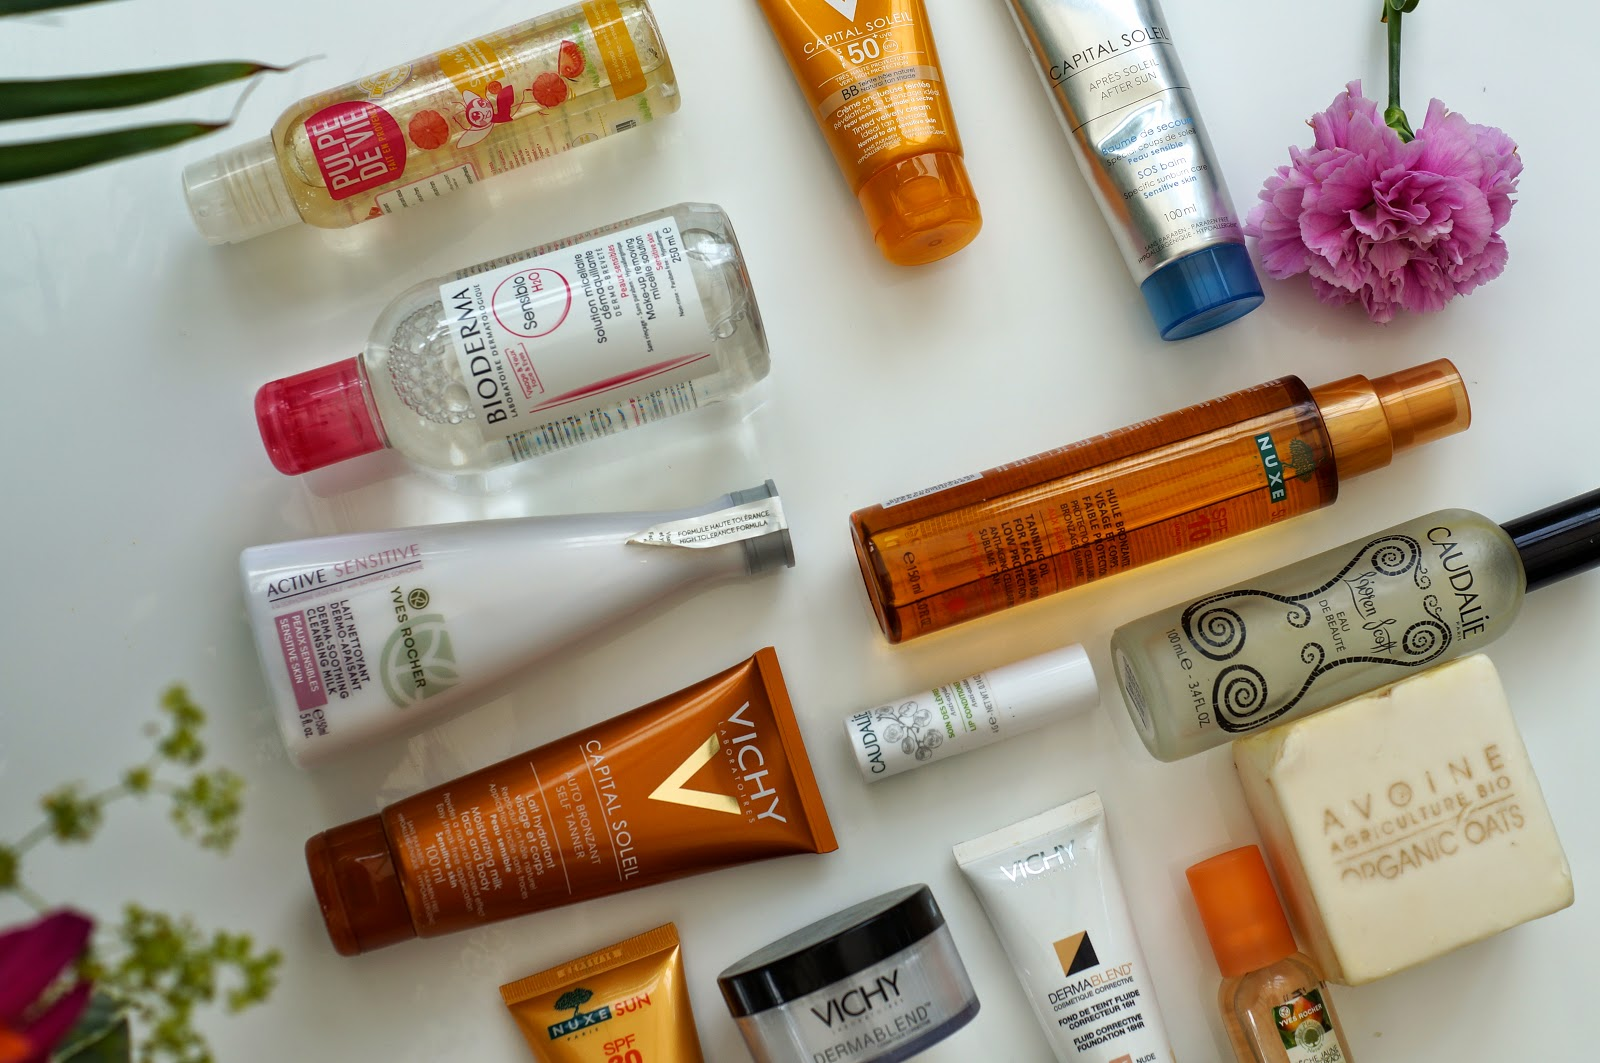 French Products Emtalks The Best French Pharmacy Beauty Products